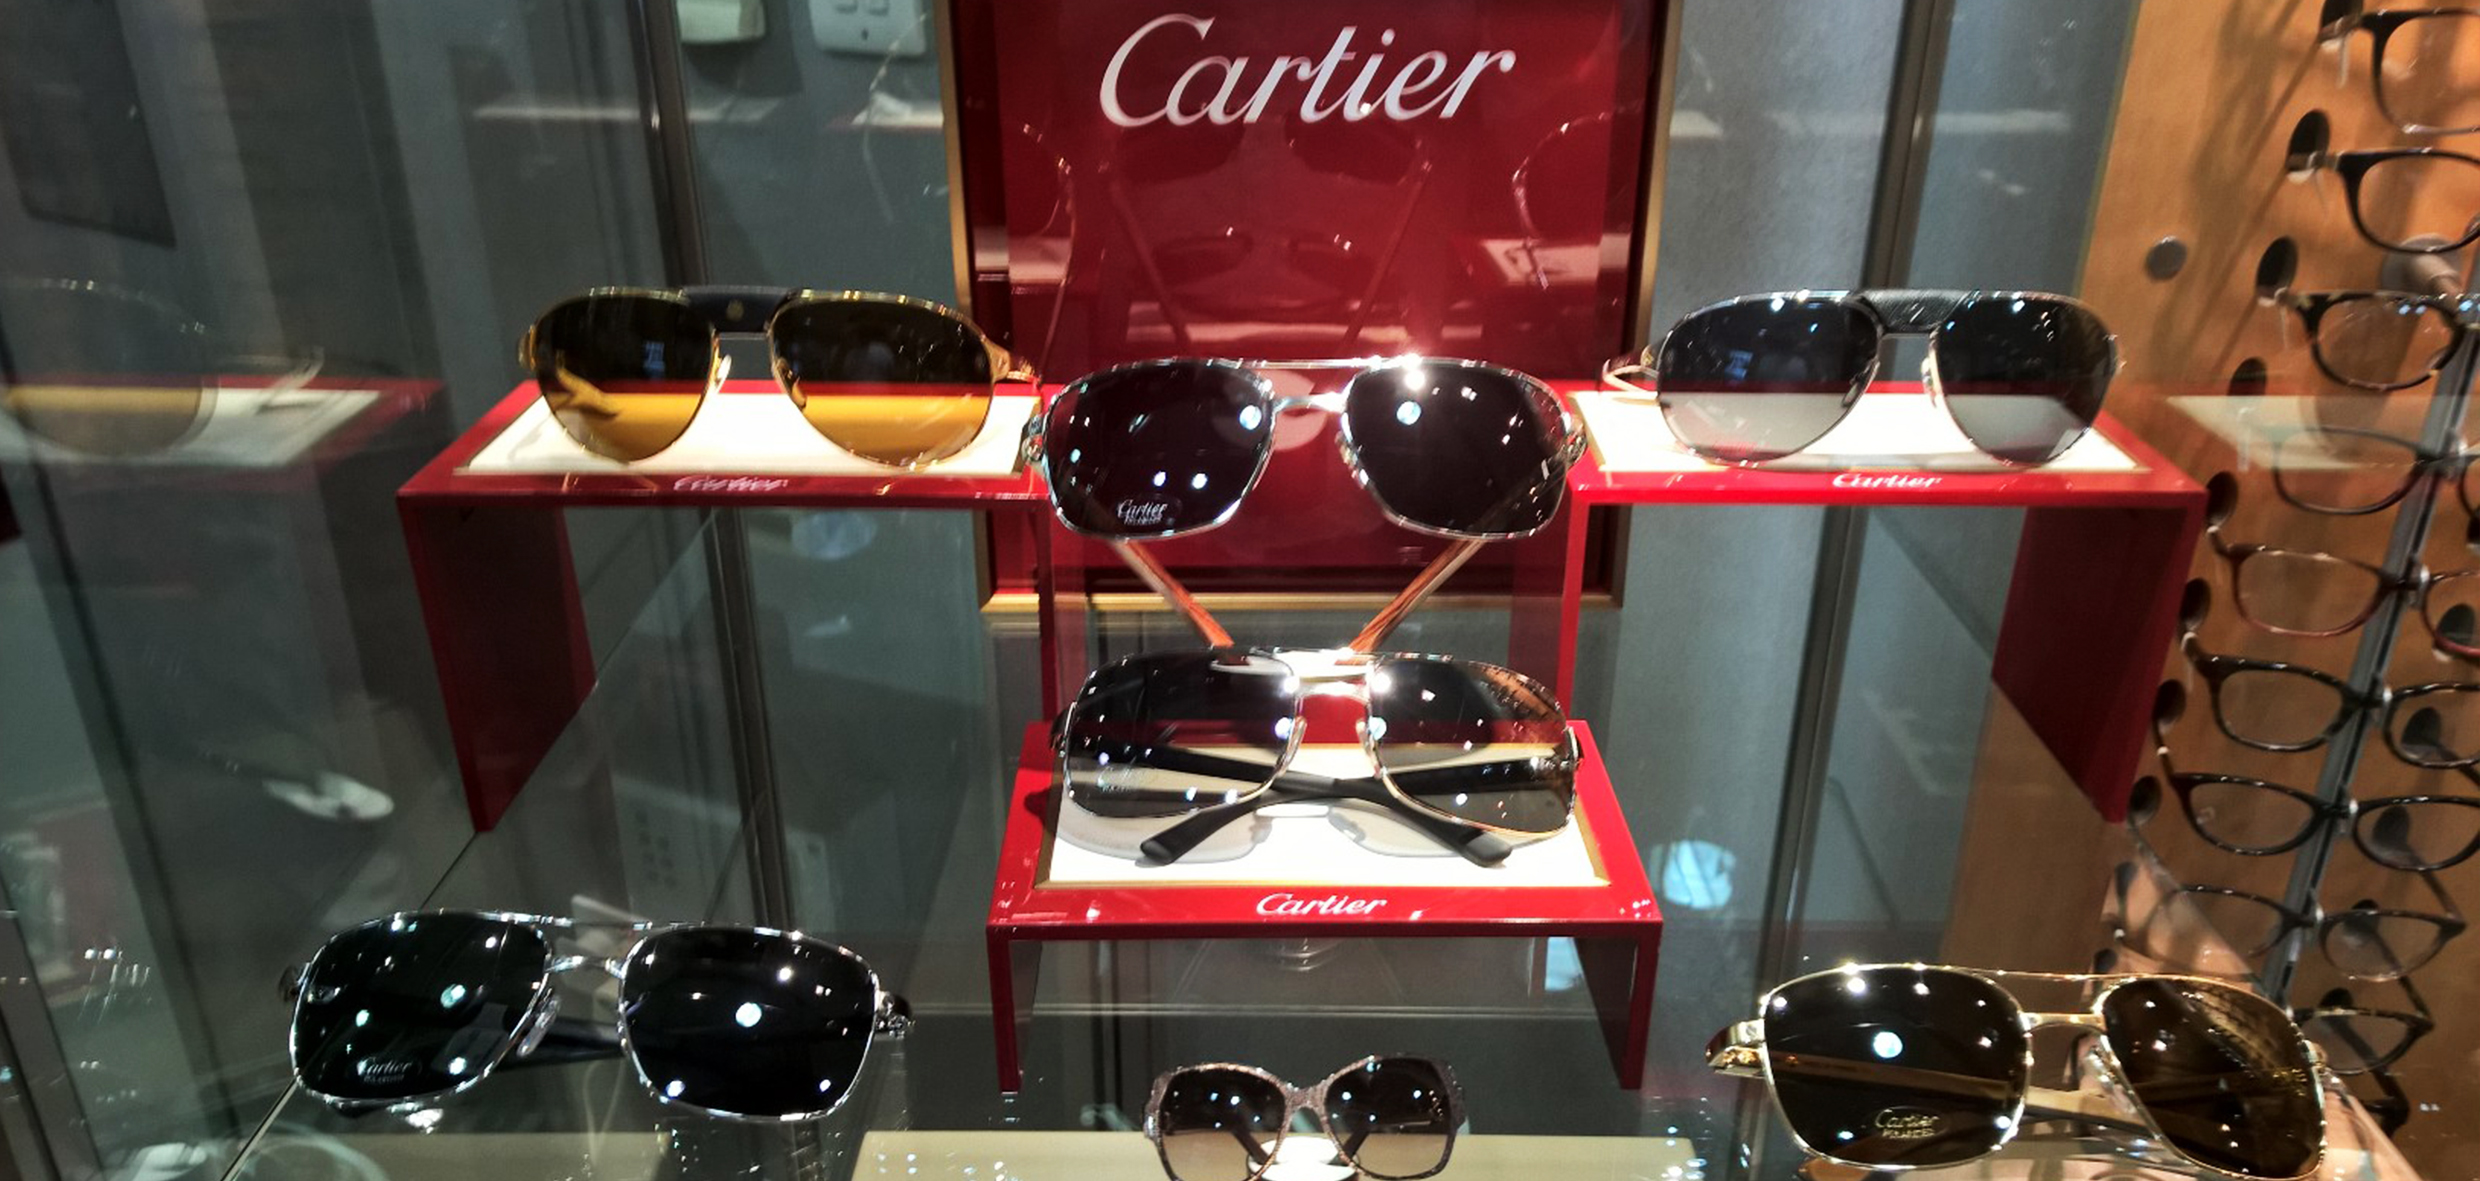 779aae579464 Designer sunglasses  Silverberg Opticians showcases their Cartier range